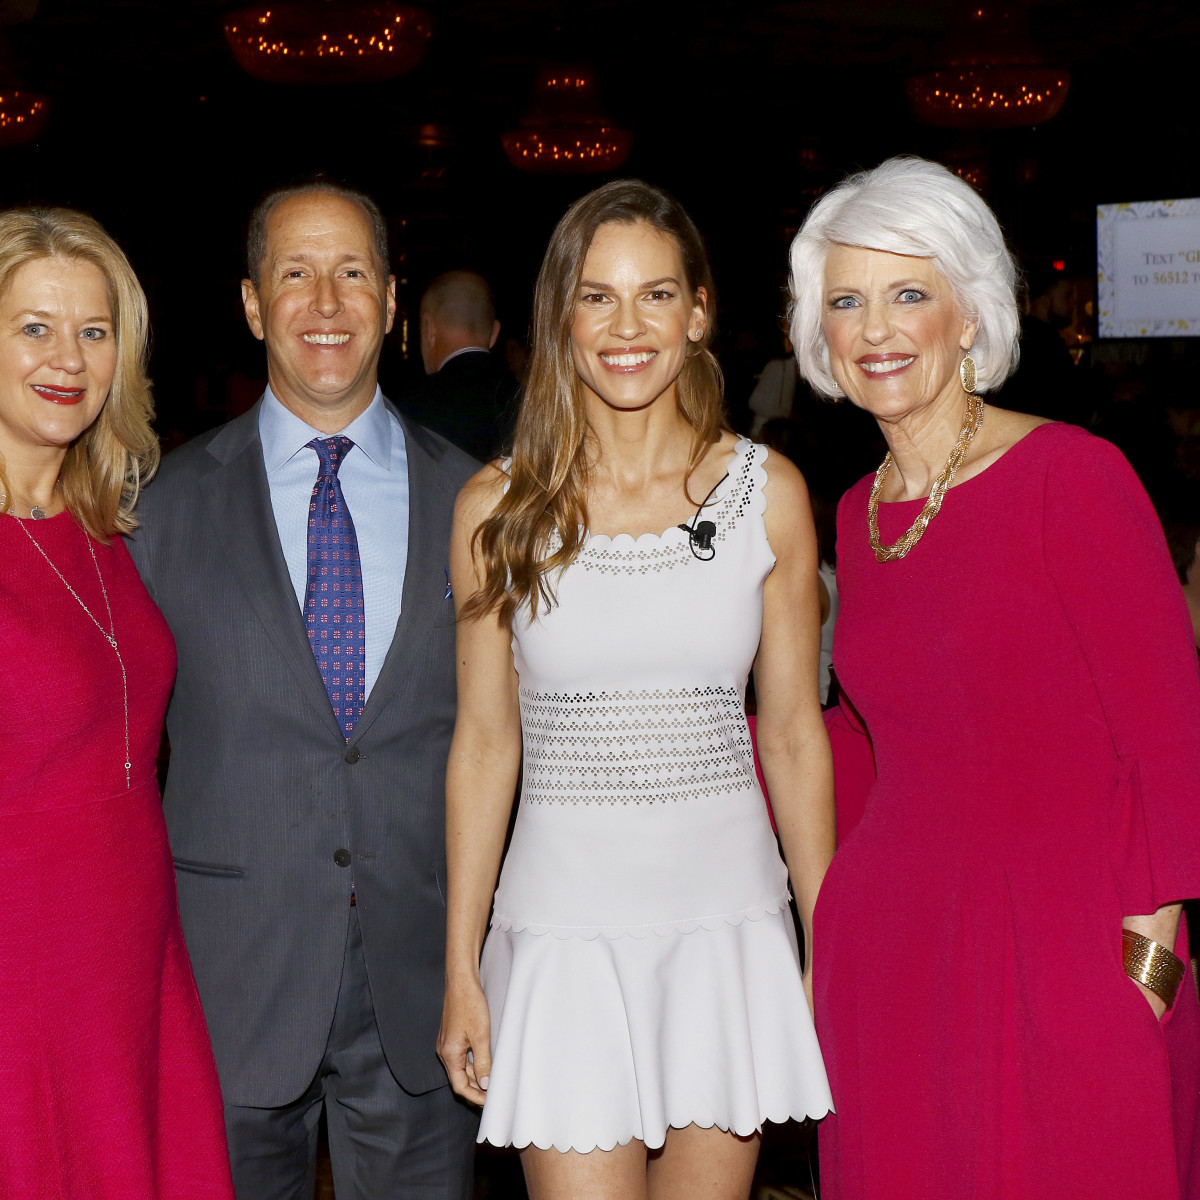 Jane Hurst, Michael Hurst, Hilary Swank, Jan Langbein